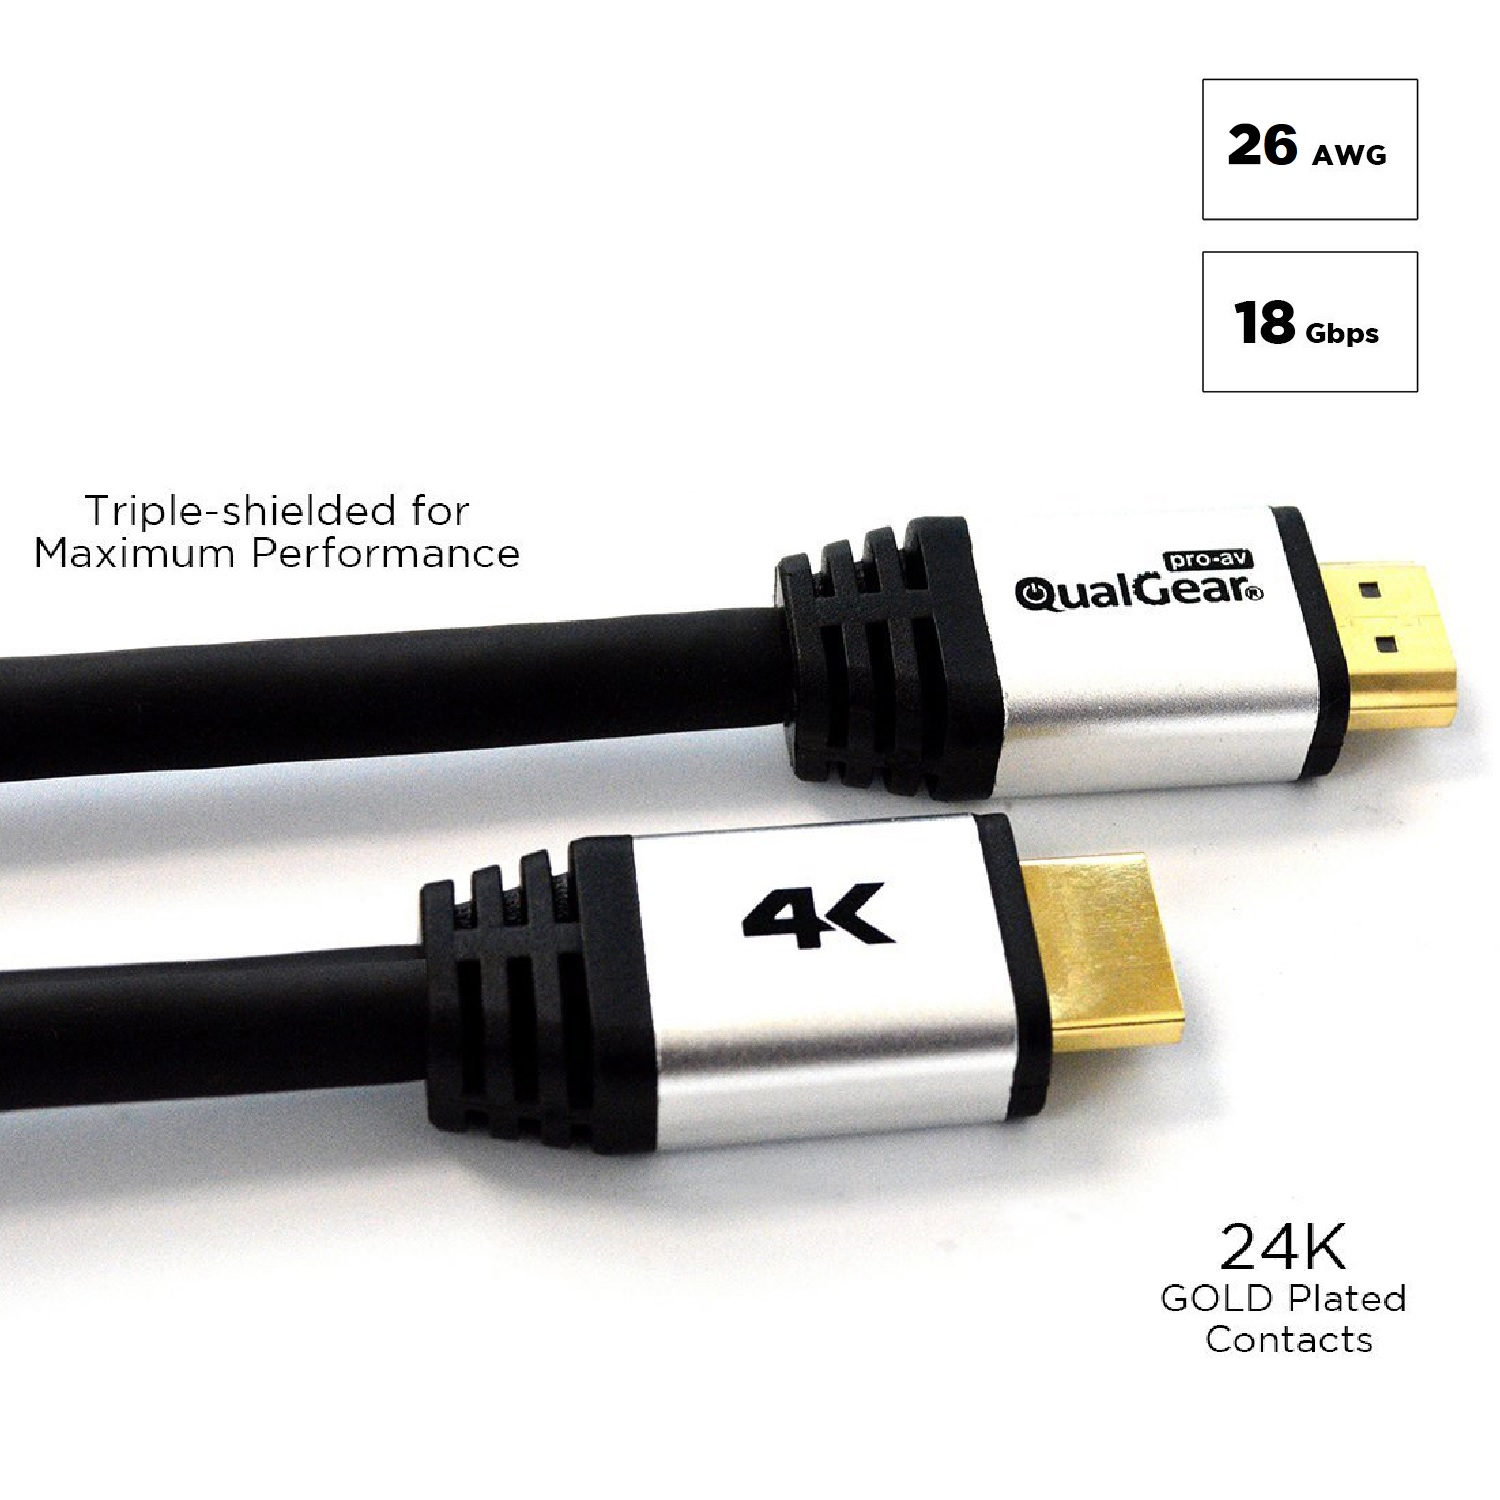 QualGear 40 Ft High-Speed Long HDMI 2.0 Cable with 24K Gold Plated Contacts, Supports 4K Ultra HD, 3D, 18 Gbps, Audio Return Channel,CL3 Rated for In-Wall Use (QG-CBL-HD20-40FT)